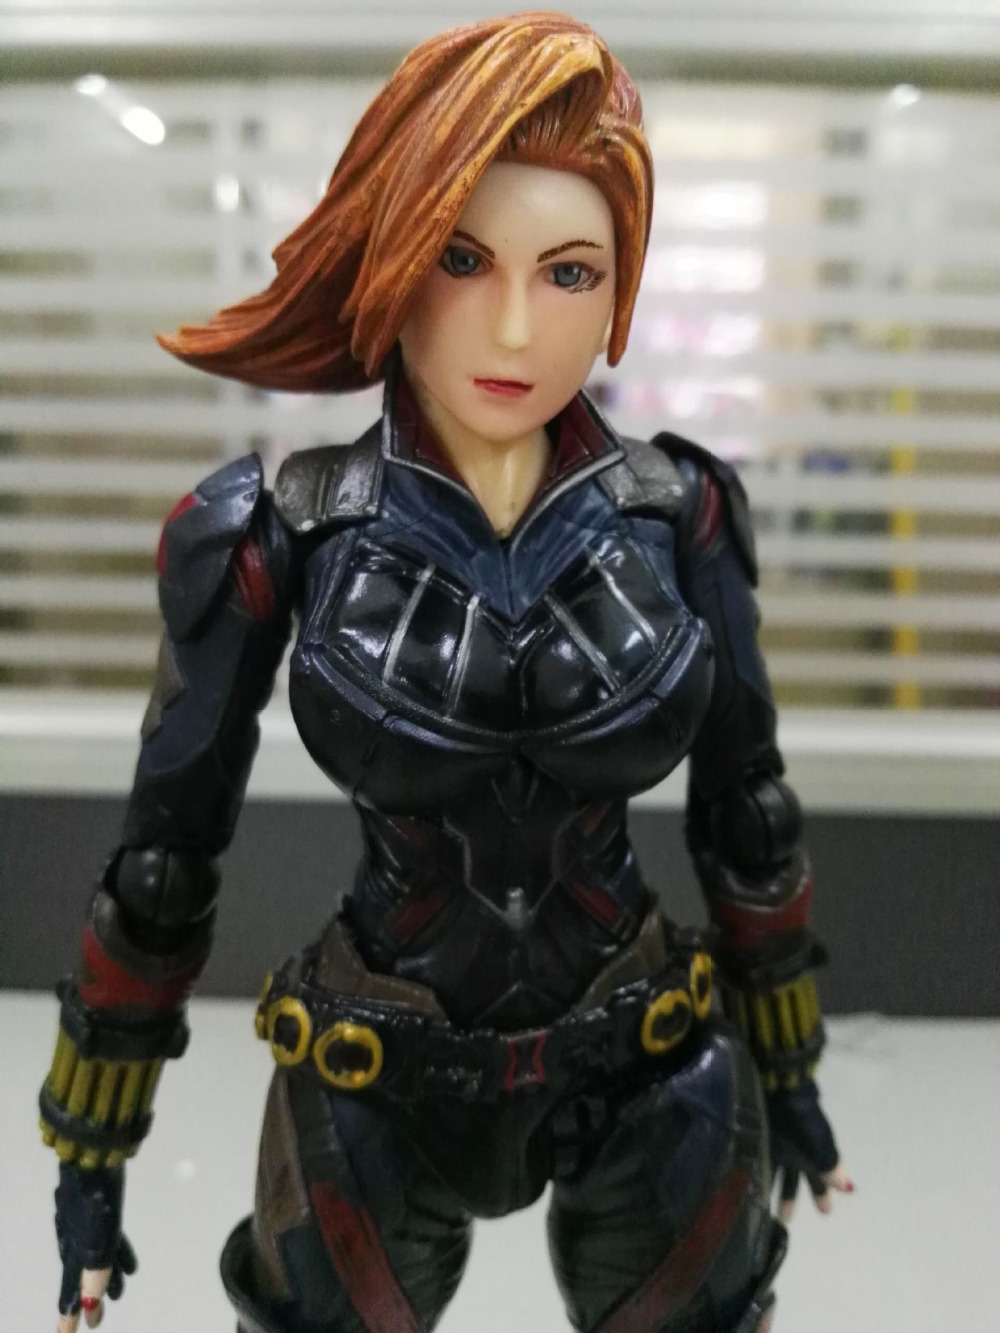 PlayArts KAI Age of Ultron Black Widow PA PVC Action Figure Collectible Model Toy with box gonlei spiderman marvel avengers 2 age of ultron hulk black widow vision ultron captain america action figures model toys